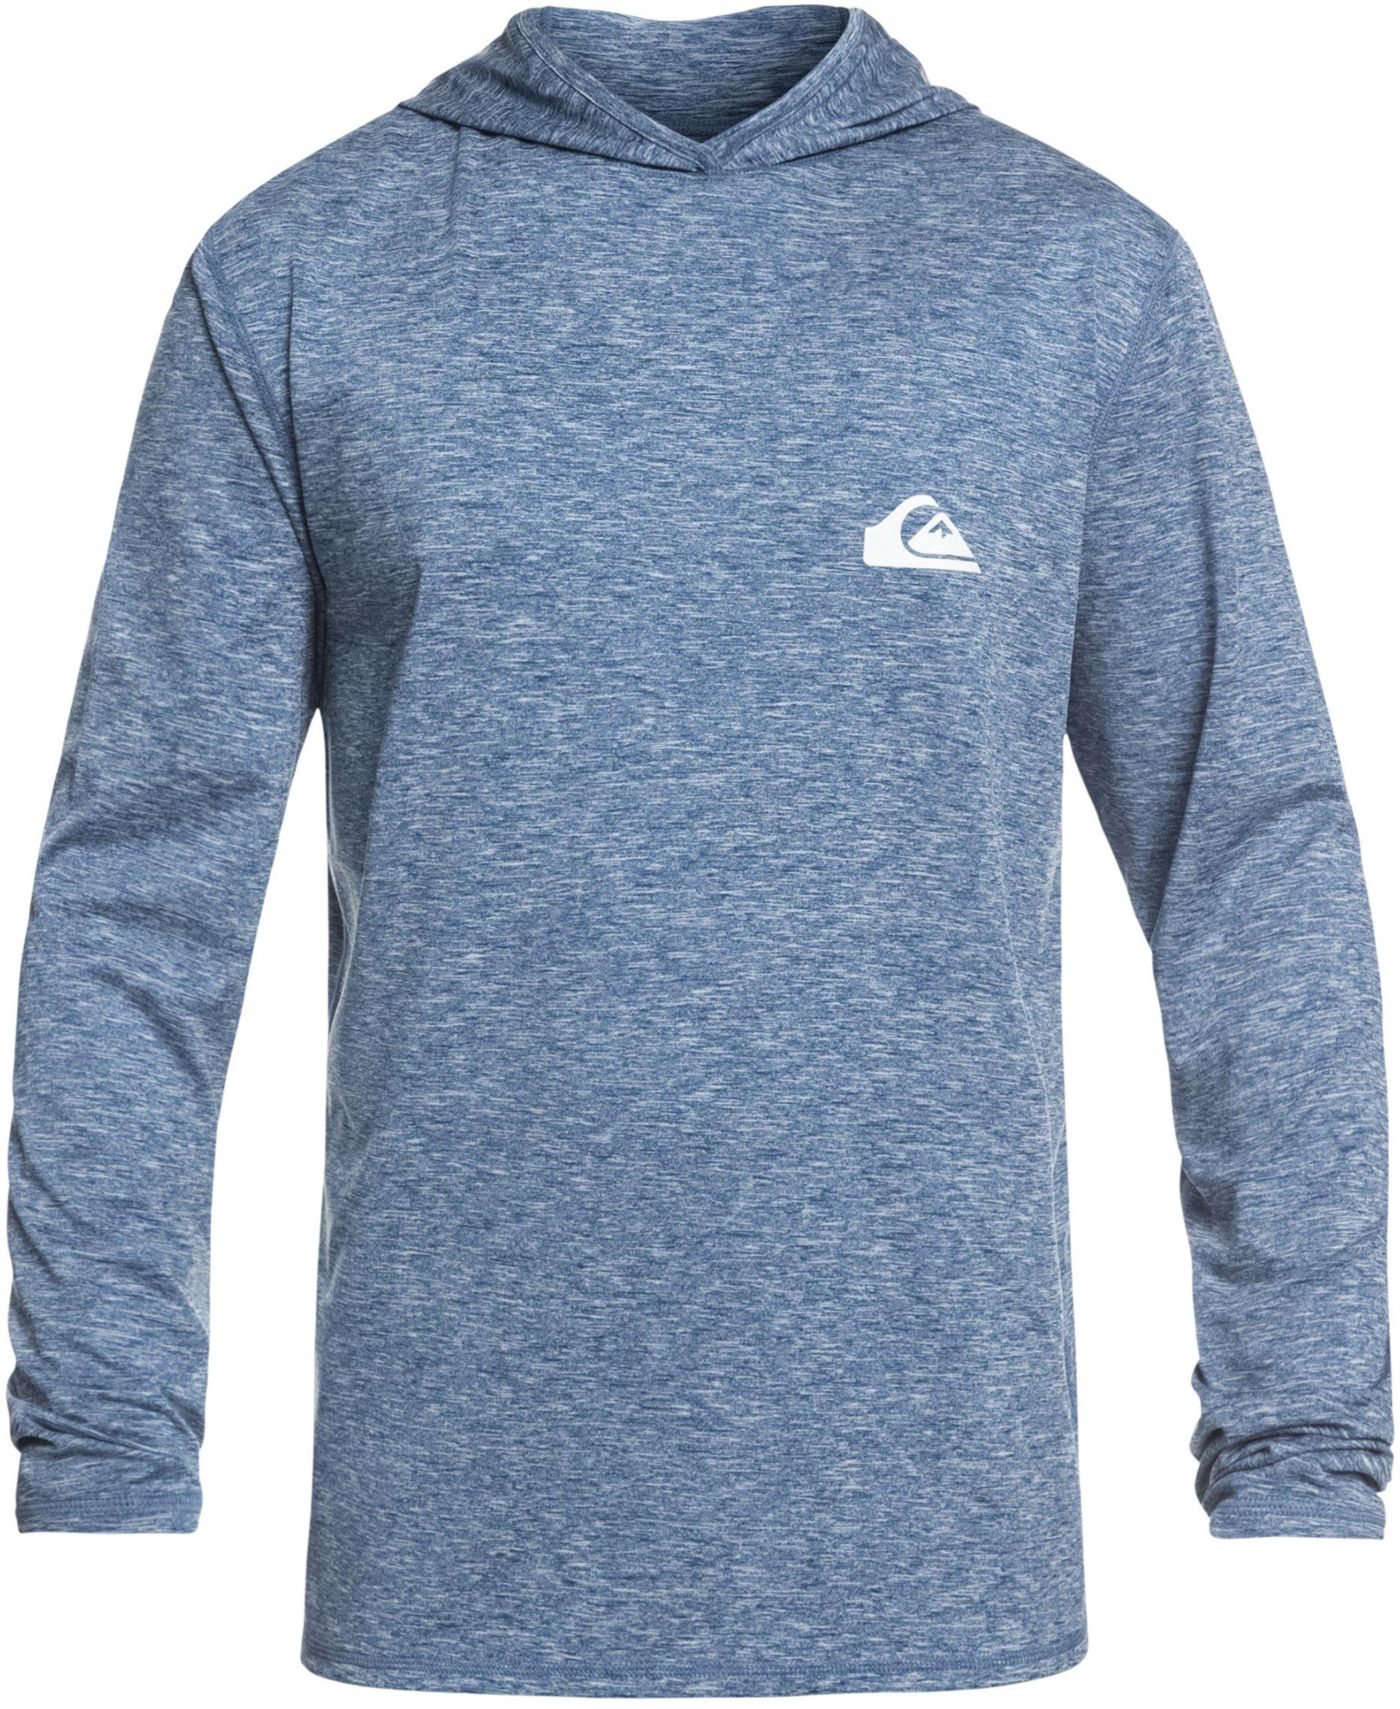 Quiksilver Men's Dredge Hooded Long Sleeve Rash Guard